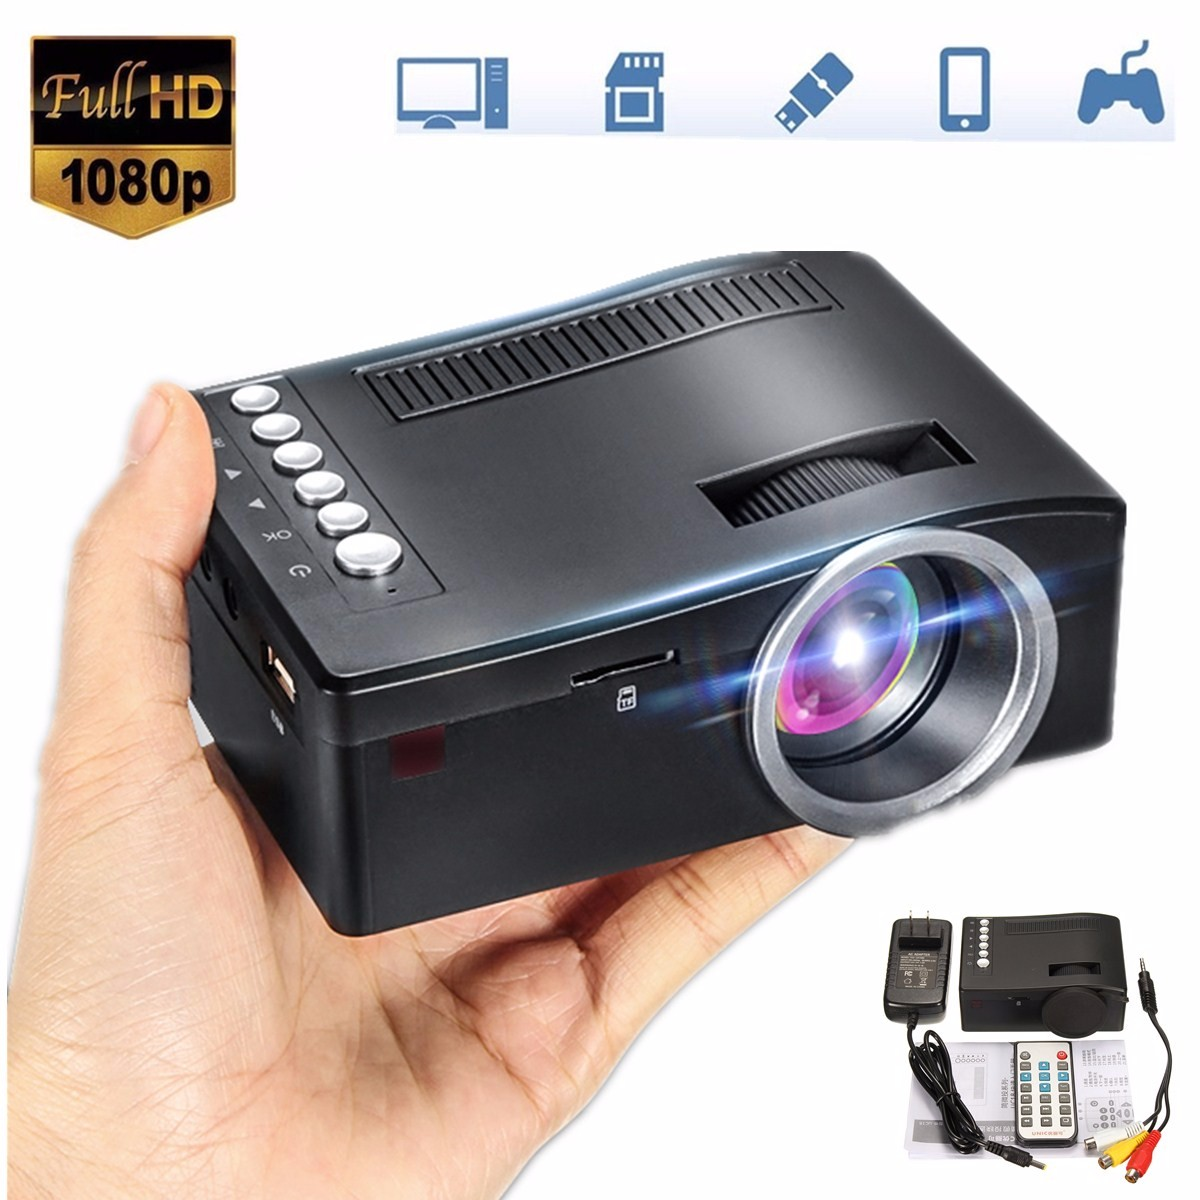 Mini Cinema Home Theater System 1080P HD Multimedia Projector TV AV USB TF HDMI PC LED Digital Pocket Home Projector Home uc40 55whd 1080p mini home 1080p led projector 50lm w hdmi av sd usb